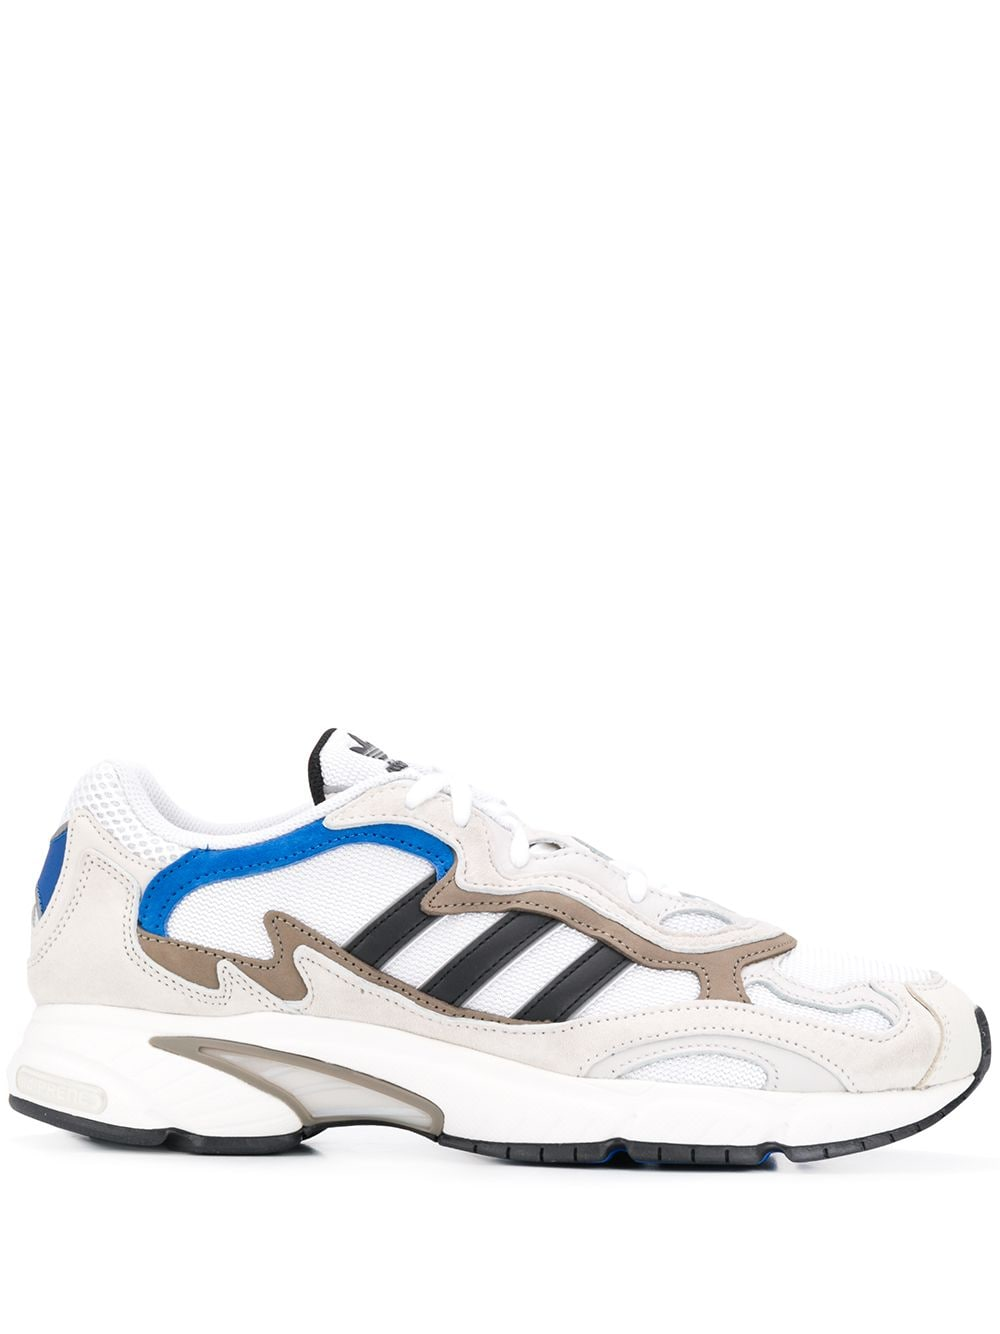 adidas Temper Run sneakers - White von adidas